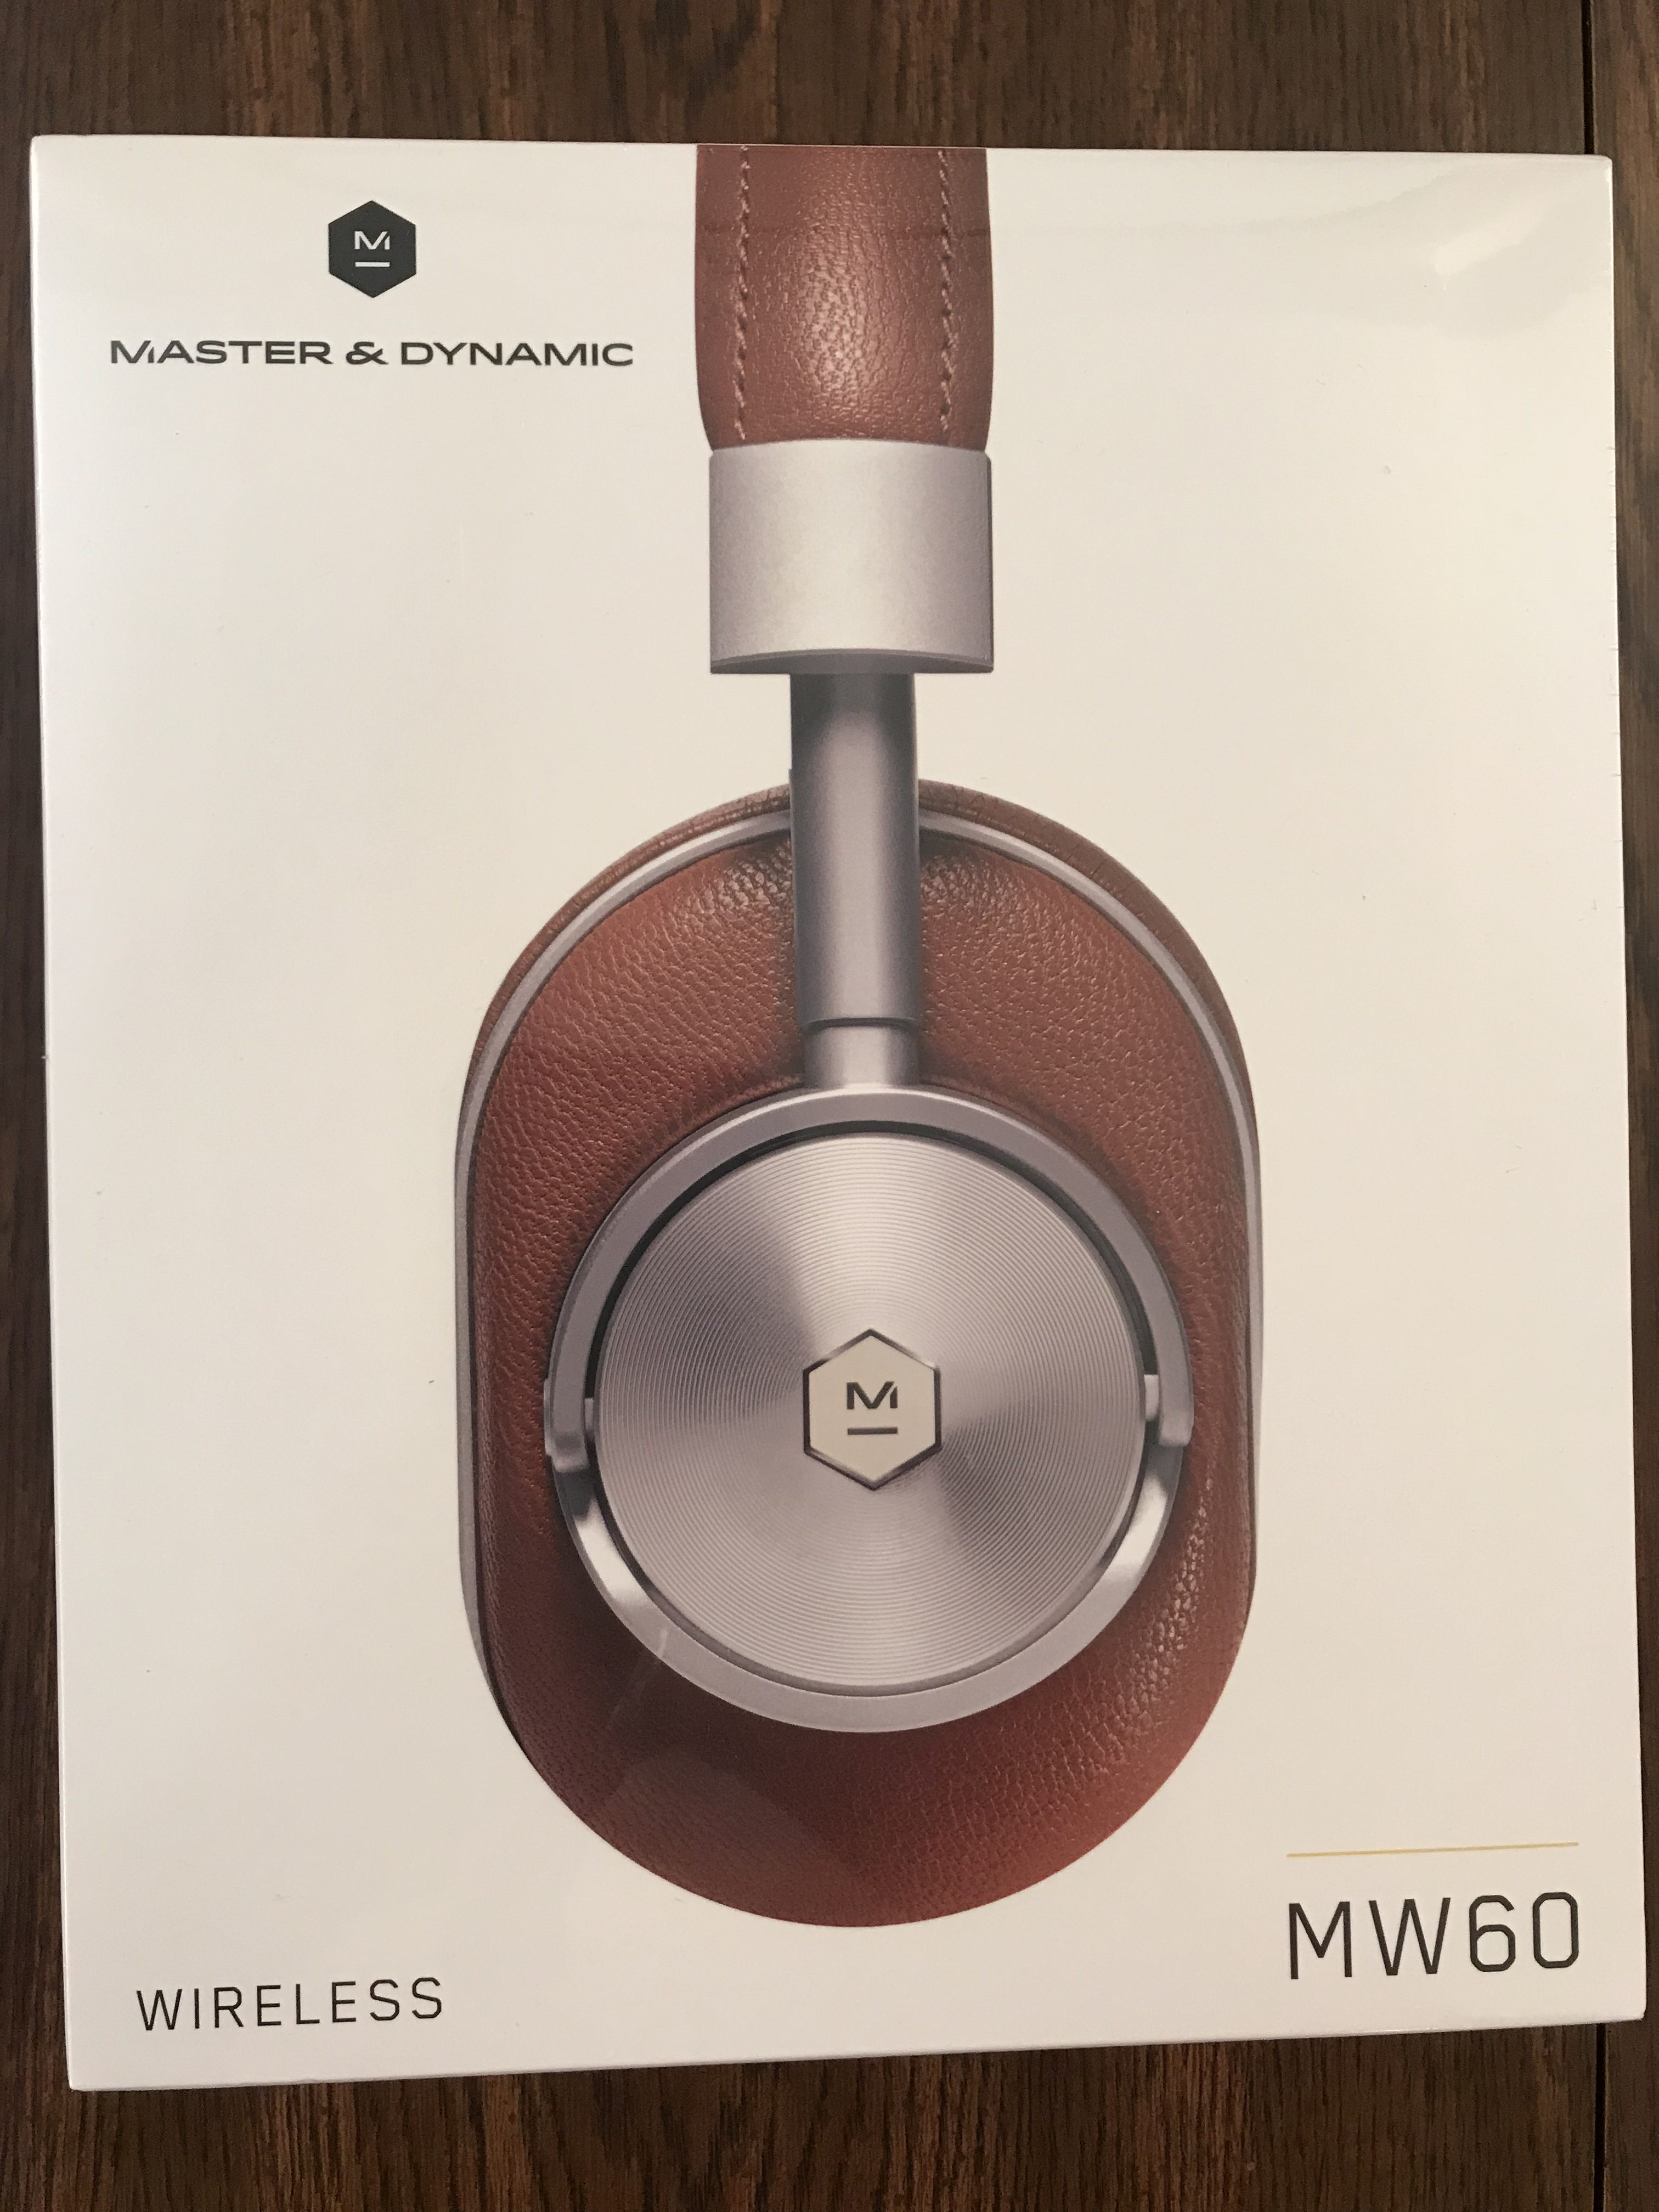 Master & Dynamic Over the Ear Wireless Headphones From BestBuy Help